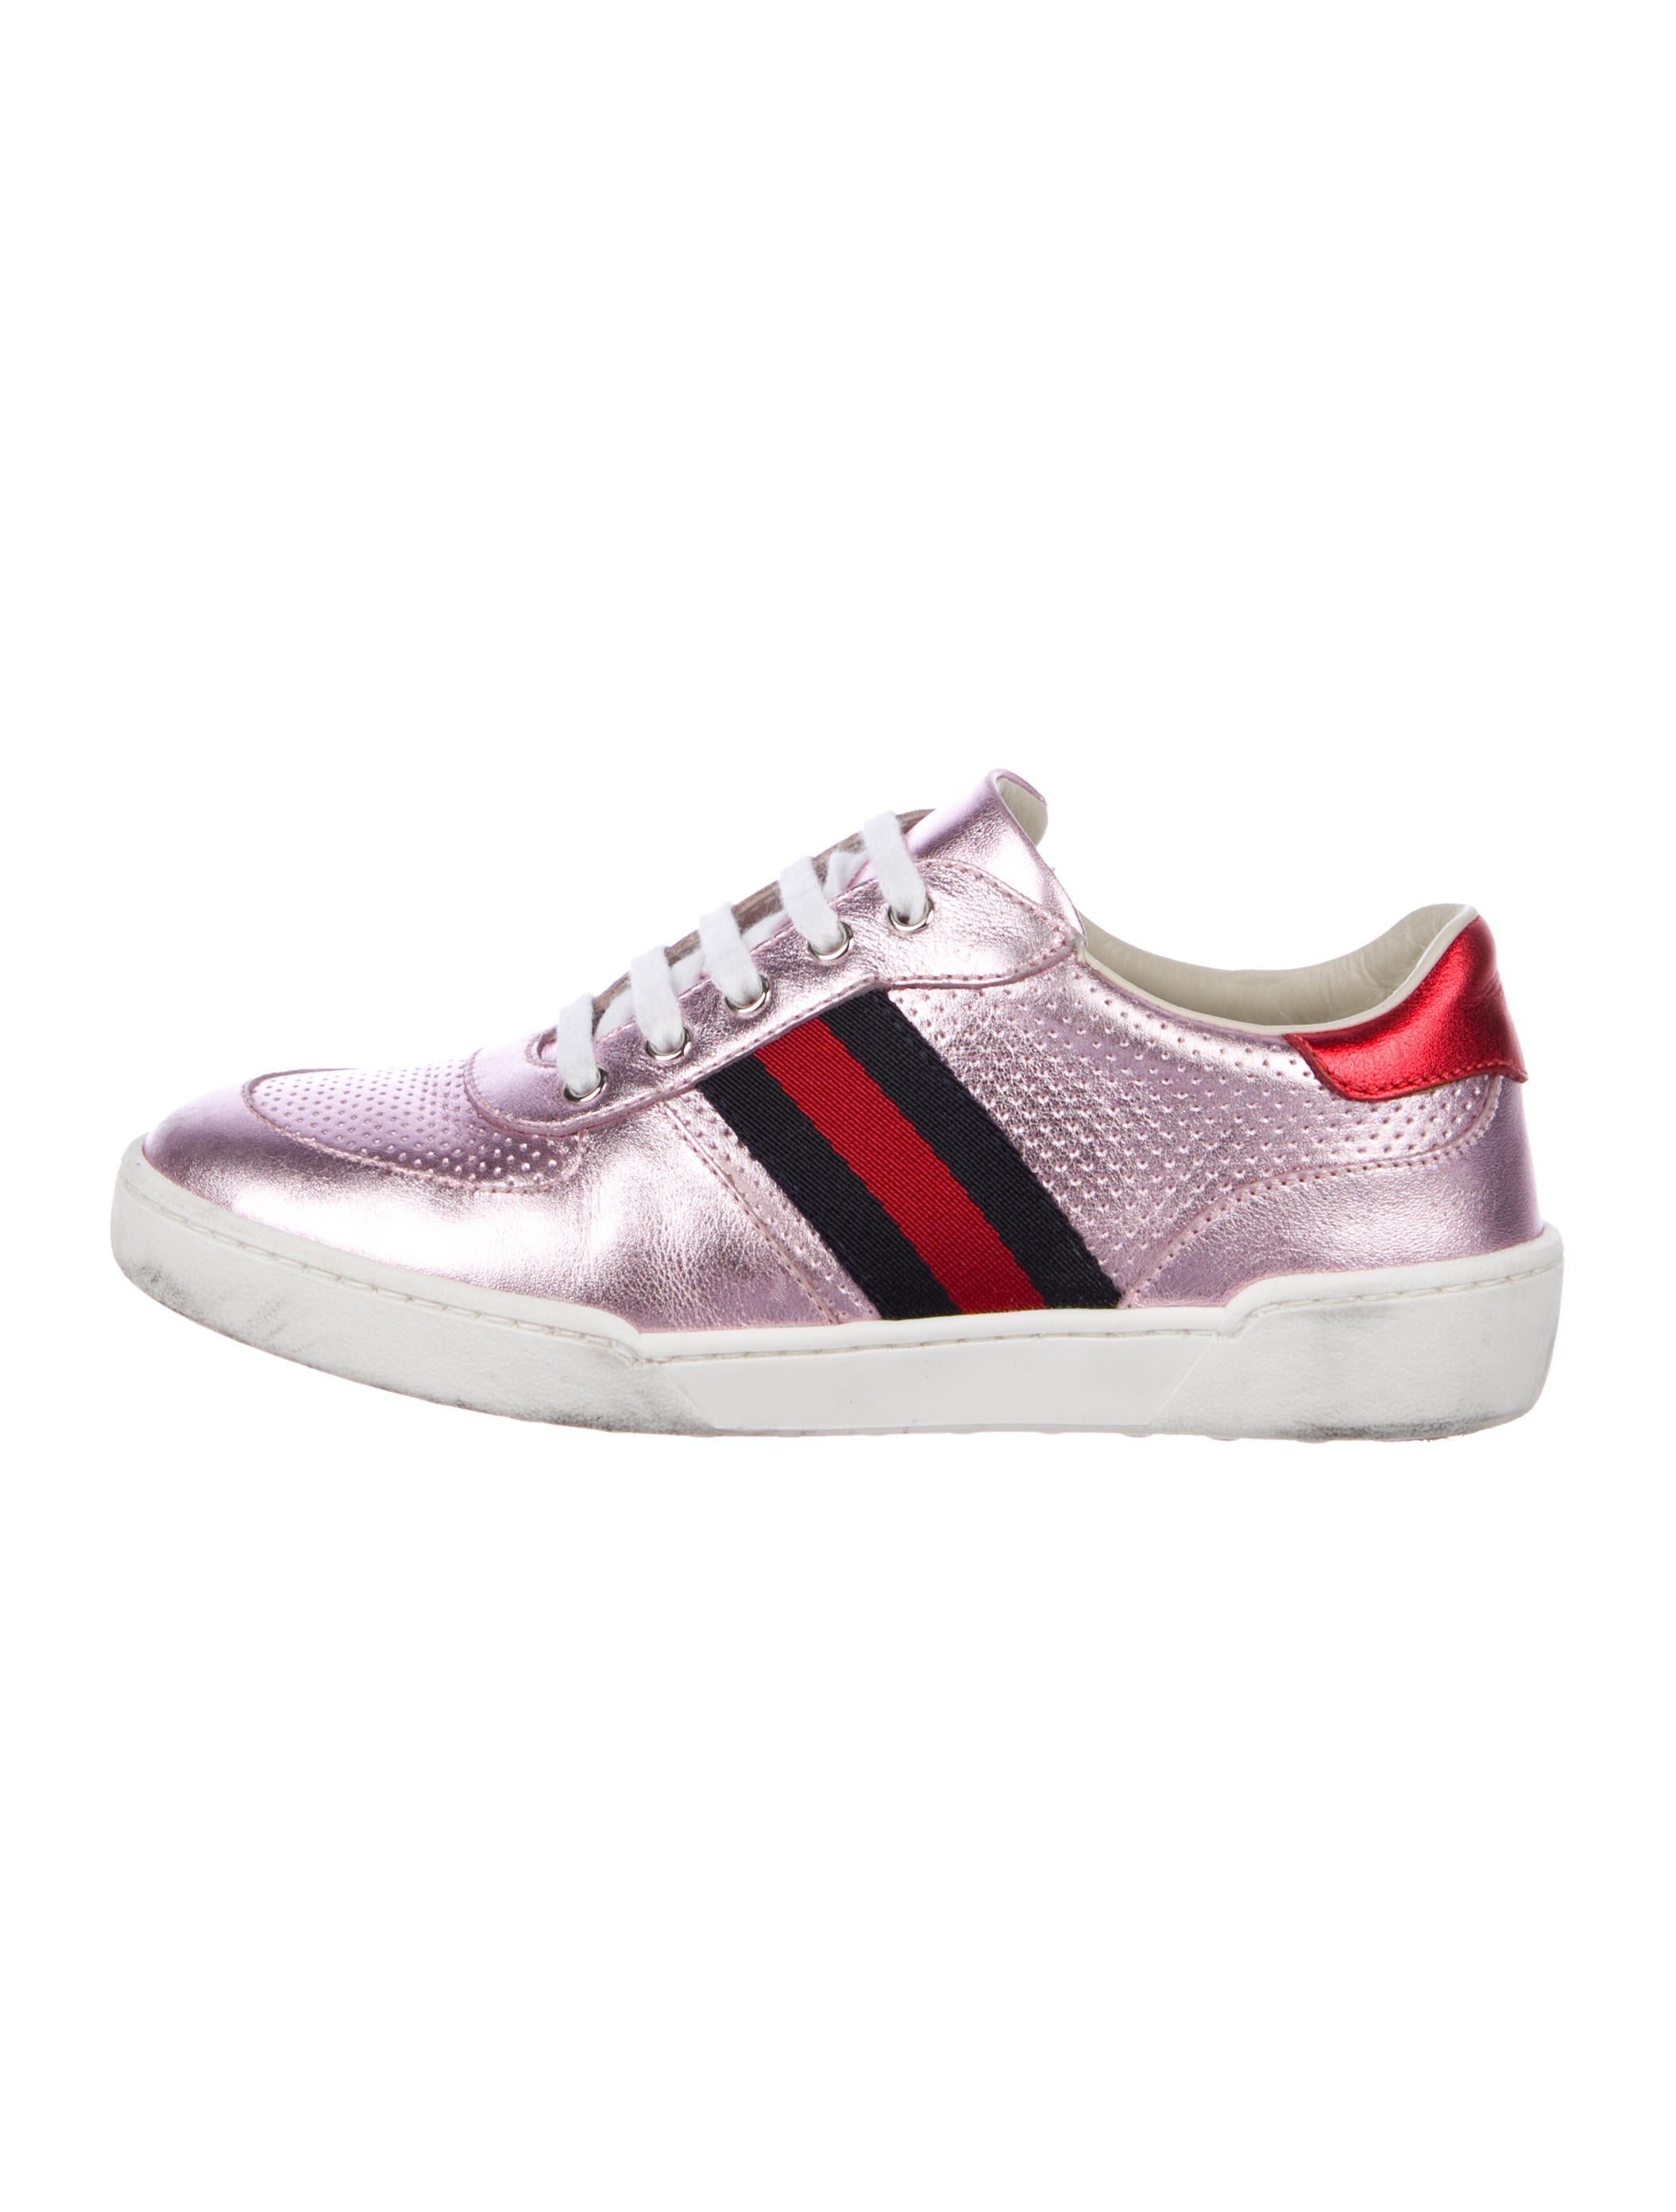 03ec6bd2104 Gucci Girls  Metallic Web Trimmed Sneakers - Girls - GUC245894